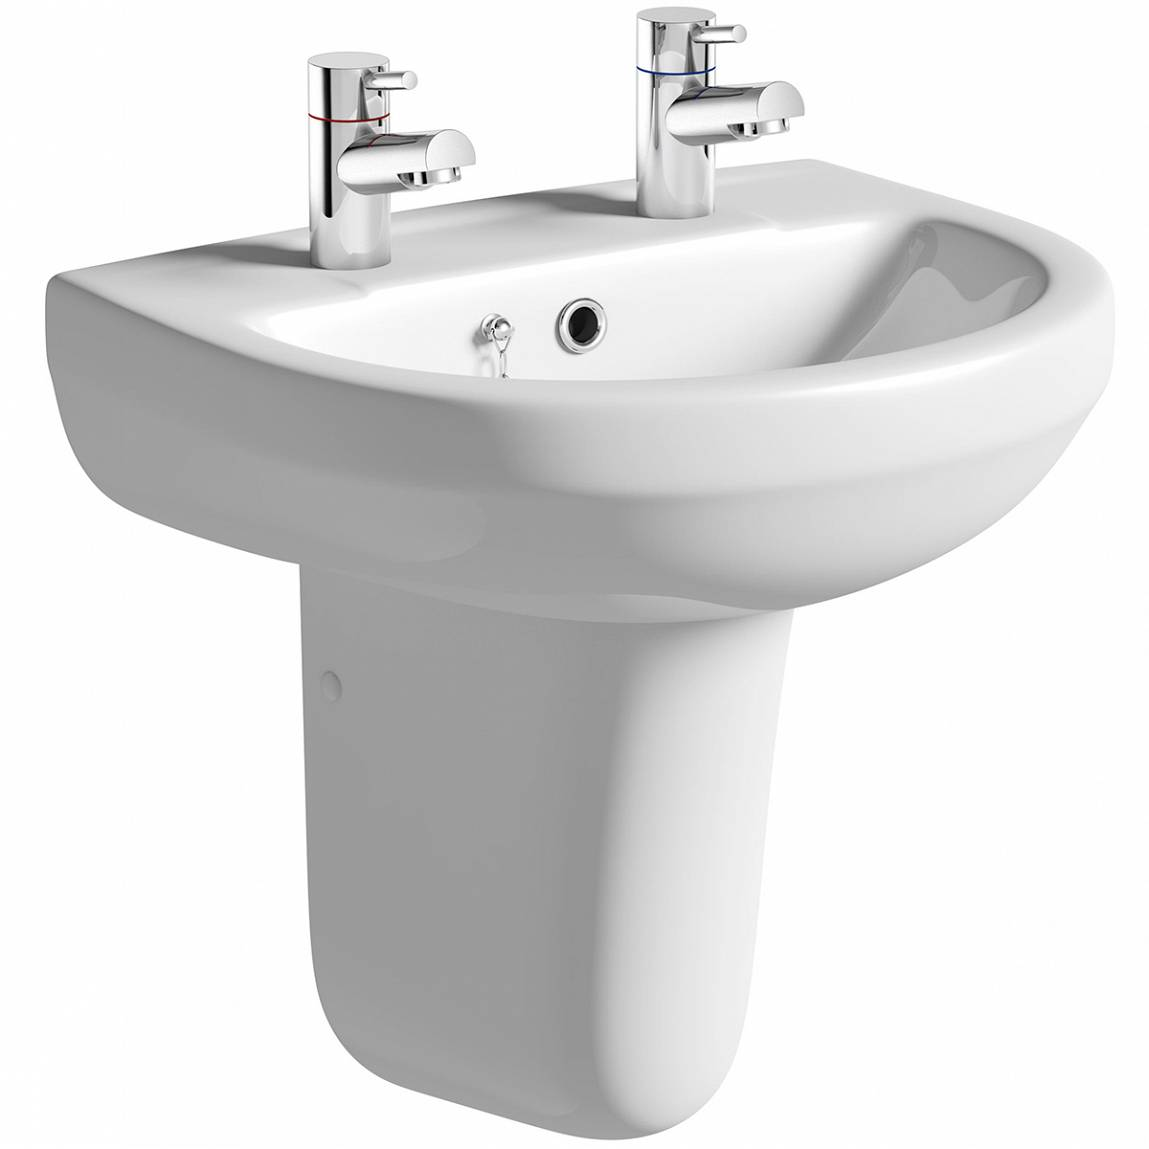 Image of Oakley 550 2TH Basin & Semi Pedestal